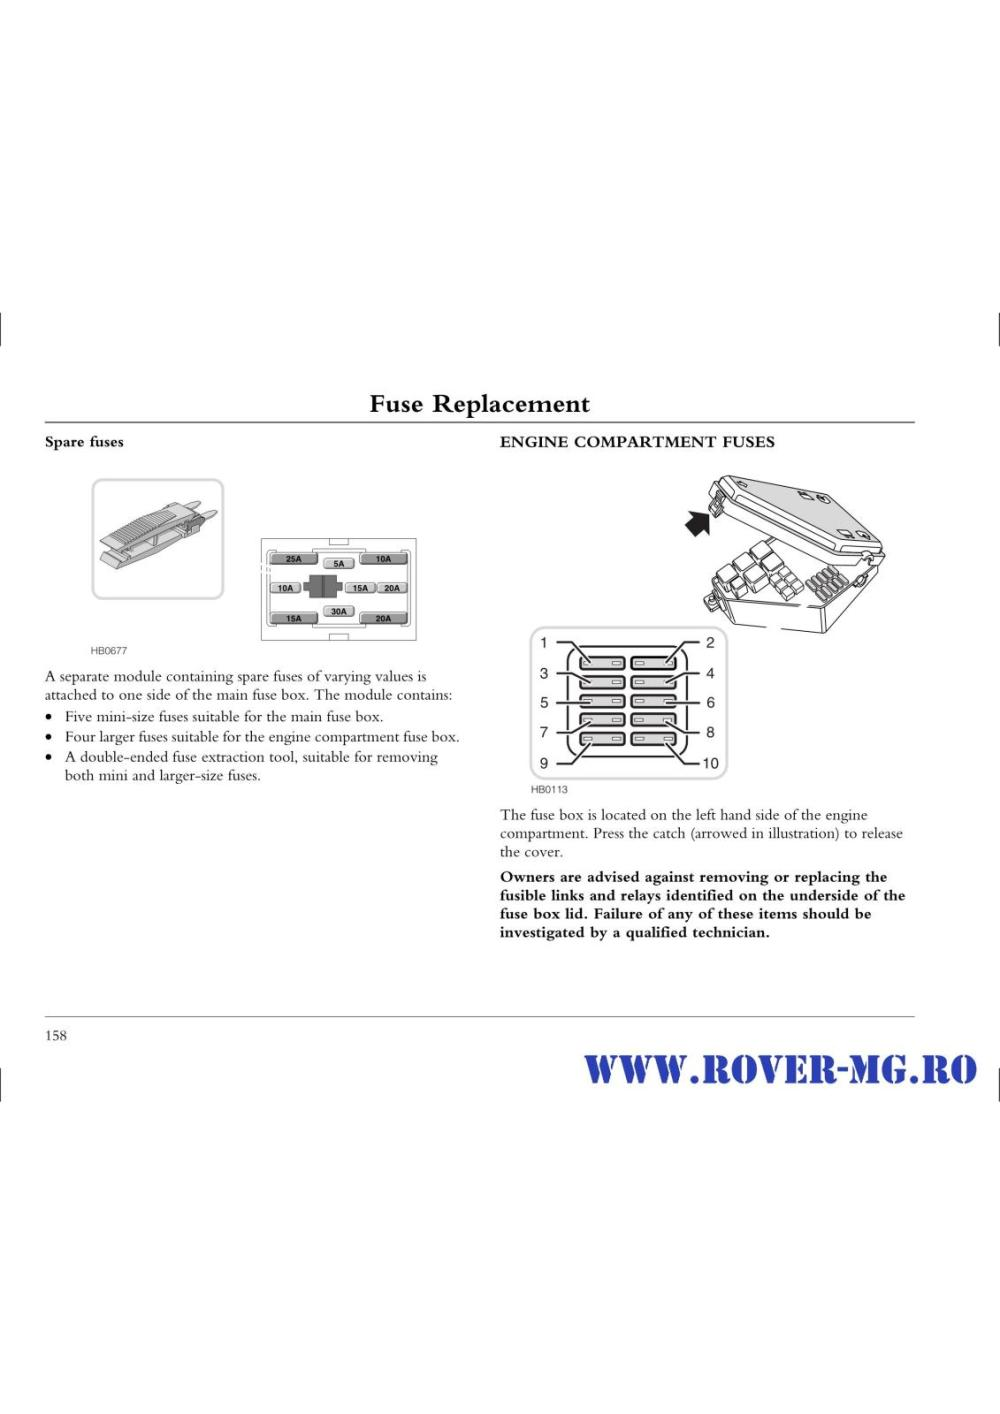 medium resolution of fusebox and diagnostic socket locations rover 25 1999 2006 petrol 1 4 page0158 i2 jpg